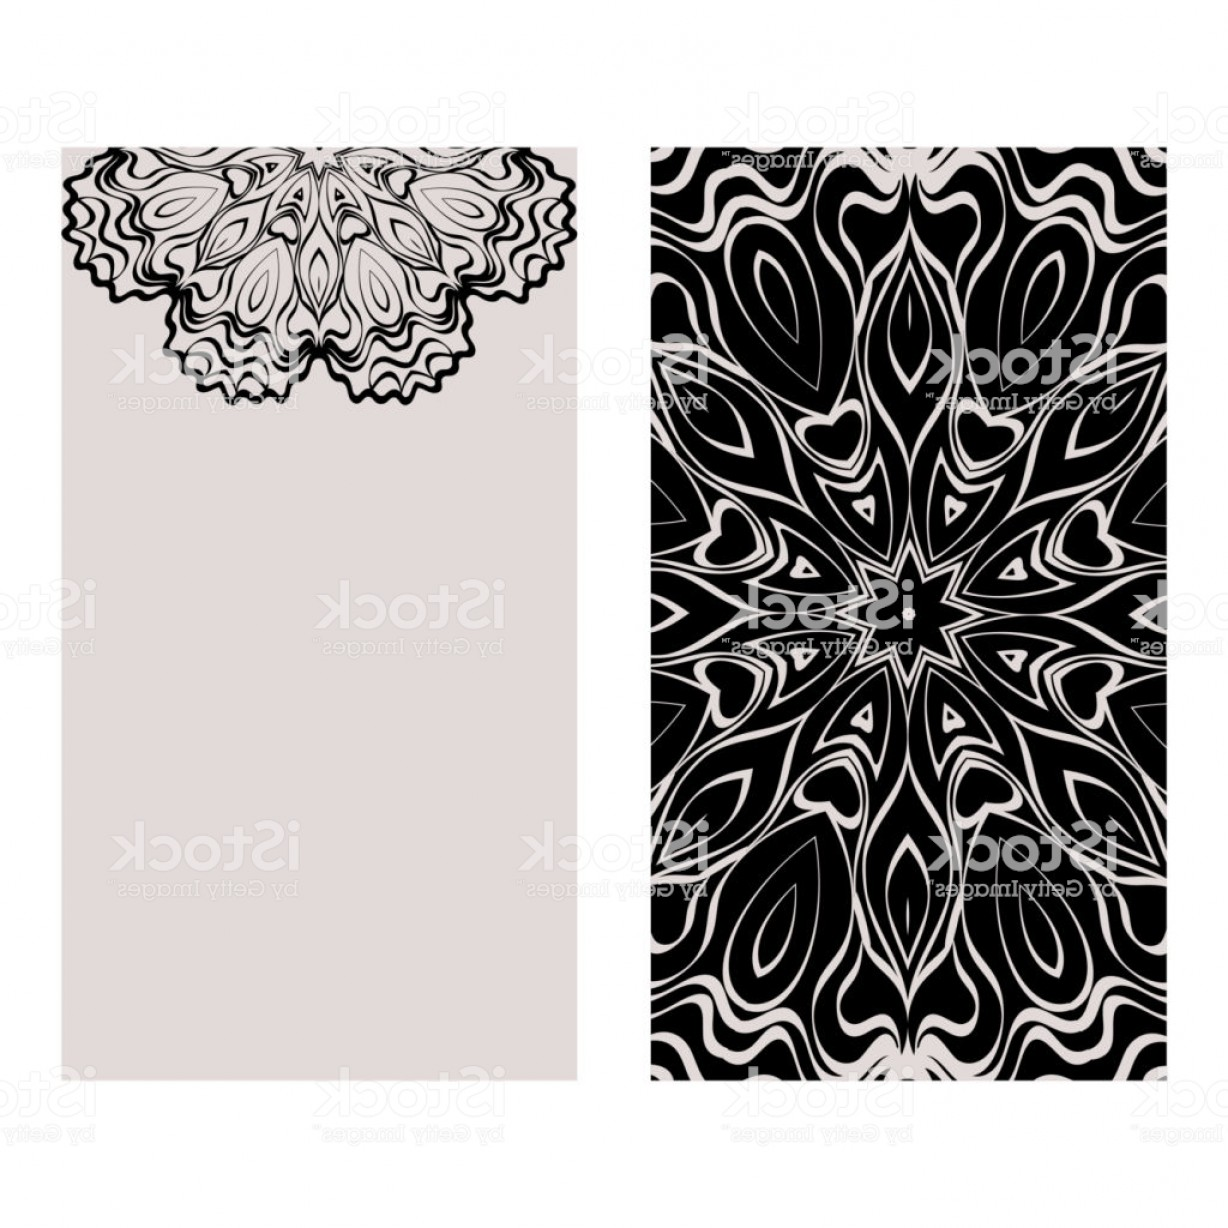 Black And White Flyer Vectors: Templates Card With Mandala Design Heathcare Lifestyle Flyer Vector Illustration Gm